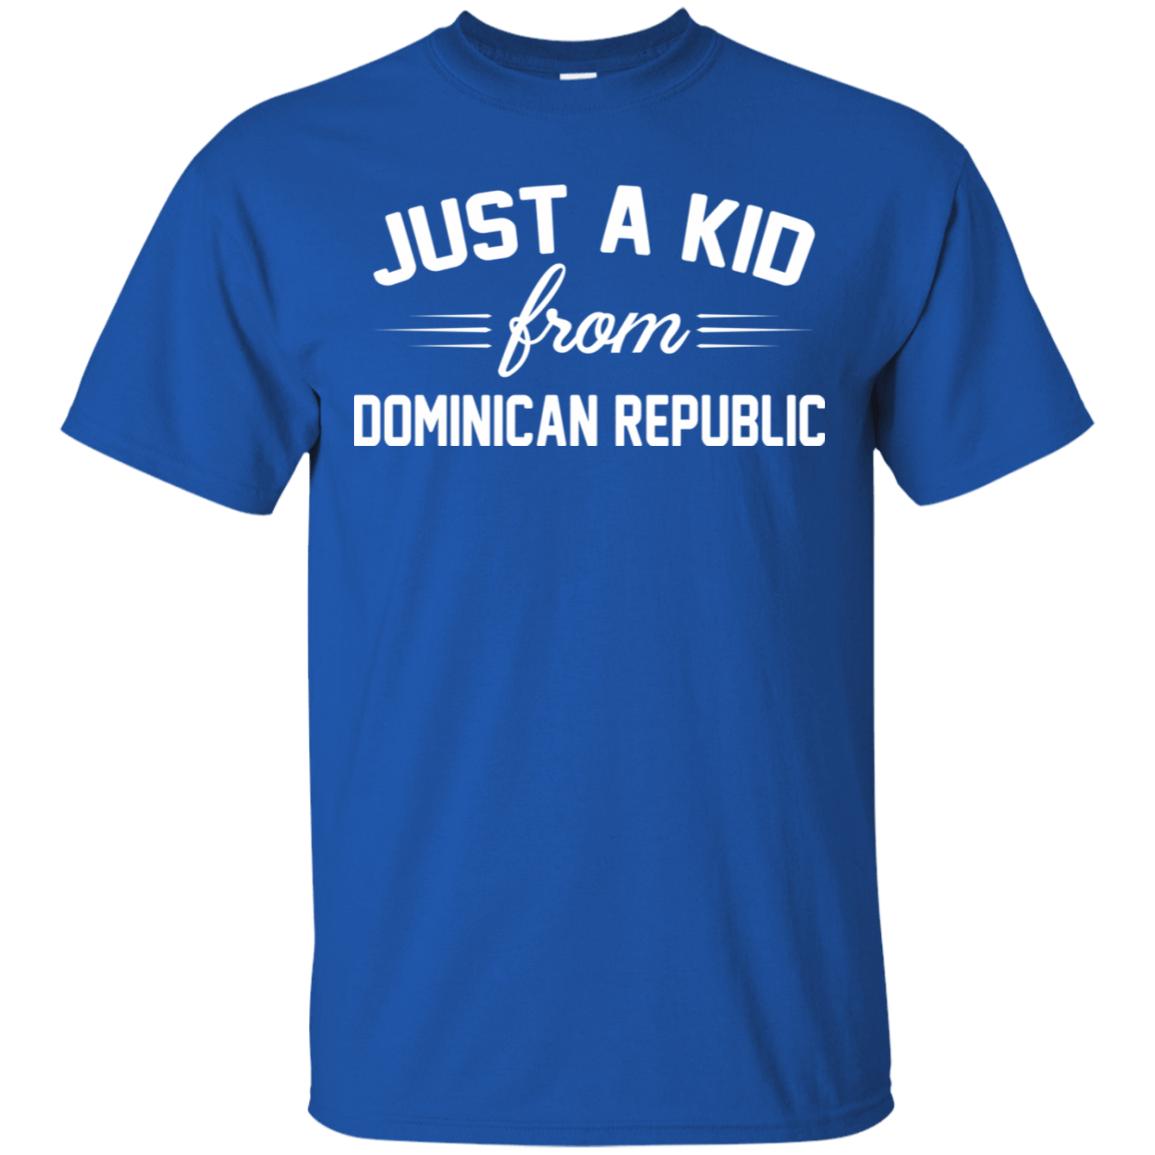 Just a Kid Store | Dominican Republic T-Shirts, Hoodie, Tank 22-110-72092748-249 - Tee Ript